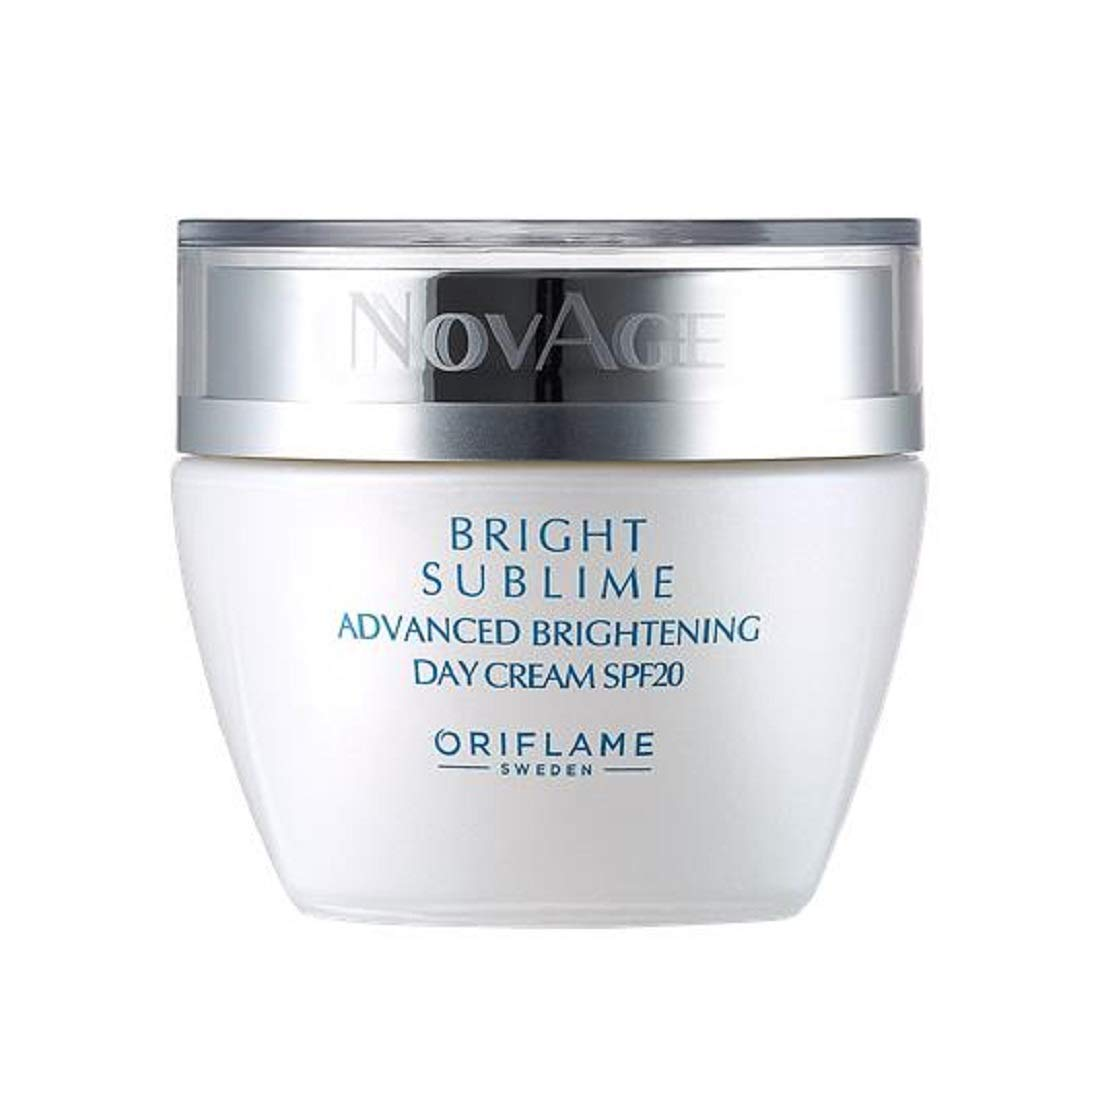 Oriflame - Novage Bright Sublime Brightening Day Selling Cream Advanced Super beauty product restock quality top